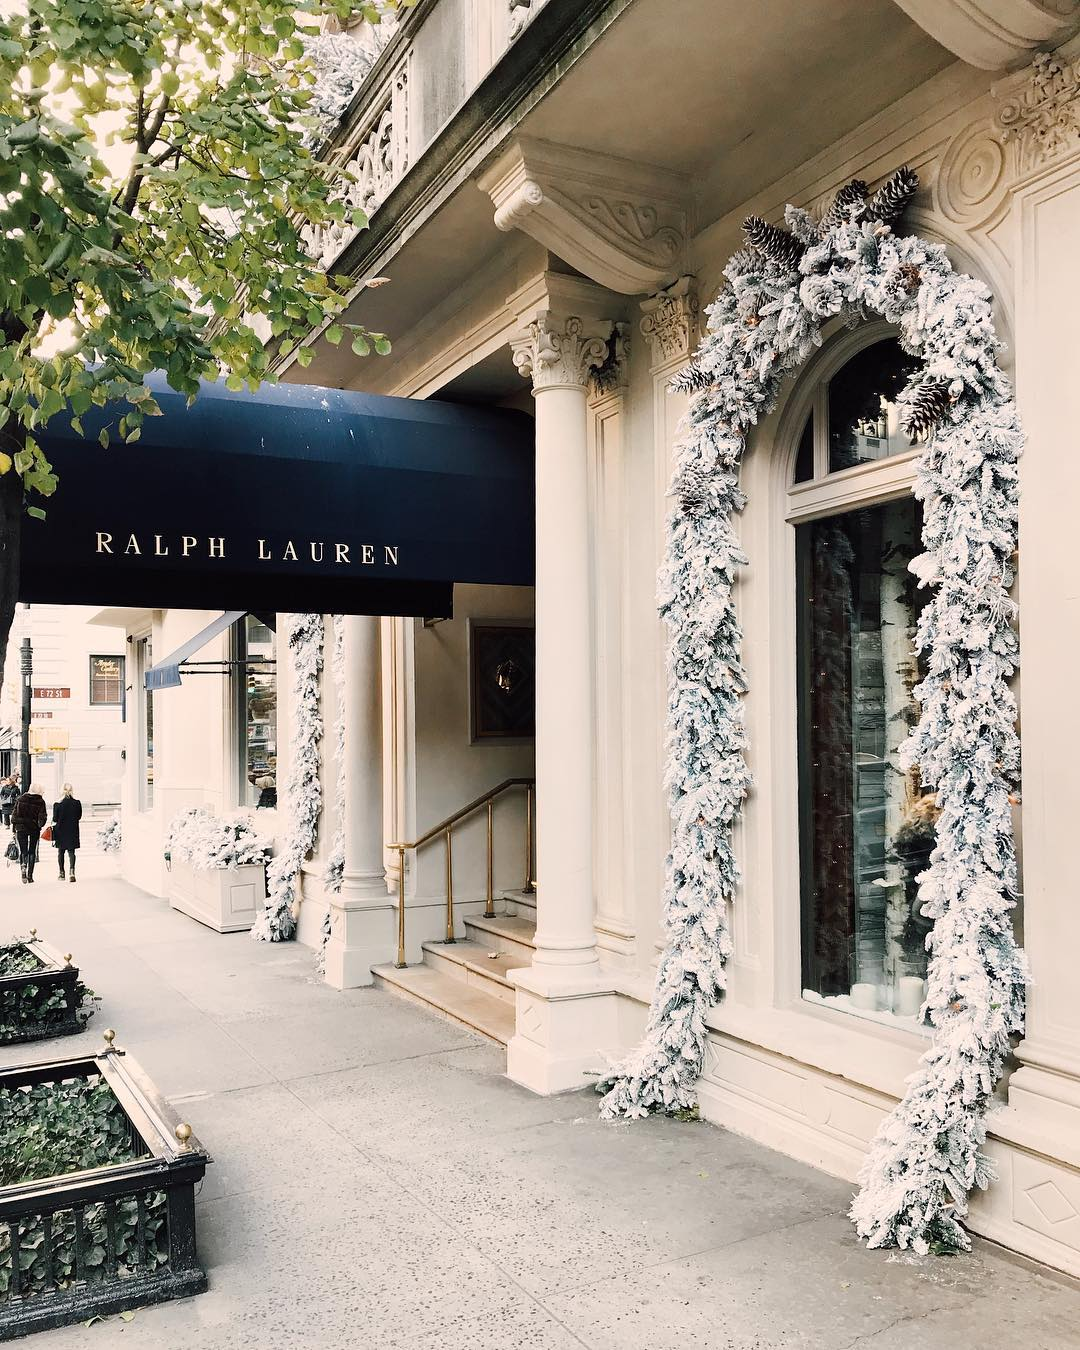 Last weekend I visited both the ralphlauren mens and womenshellip